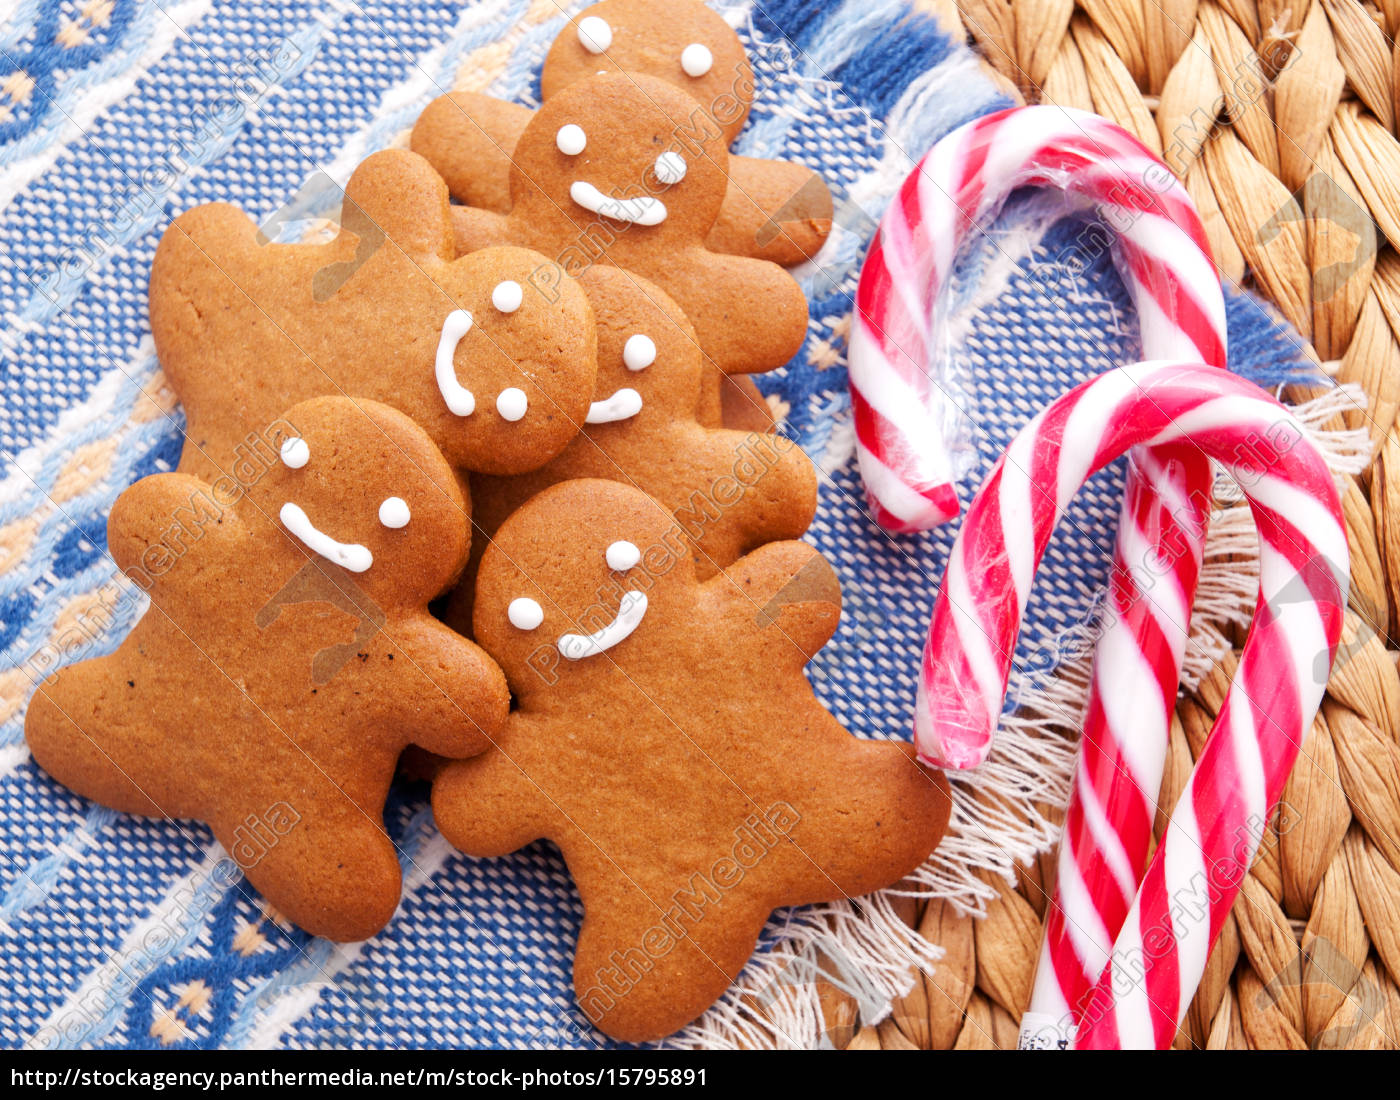 gingerbread, men, gingerbread, men, gingerbread, men, gingerbread, men - 15795891